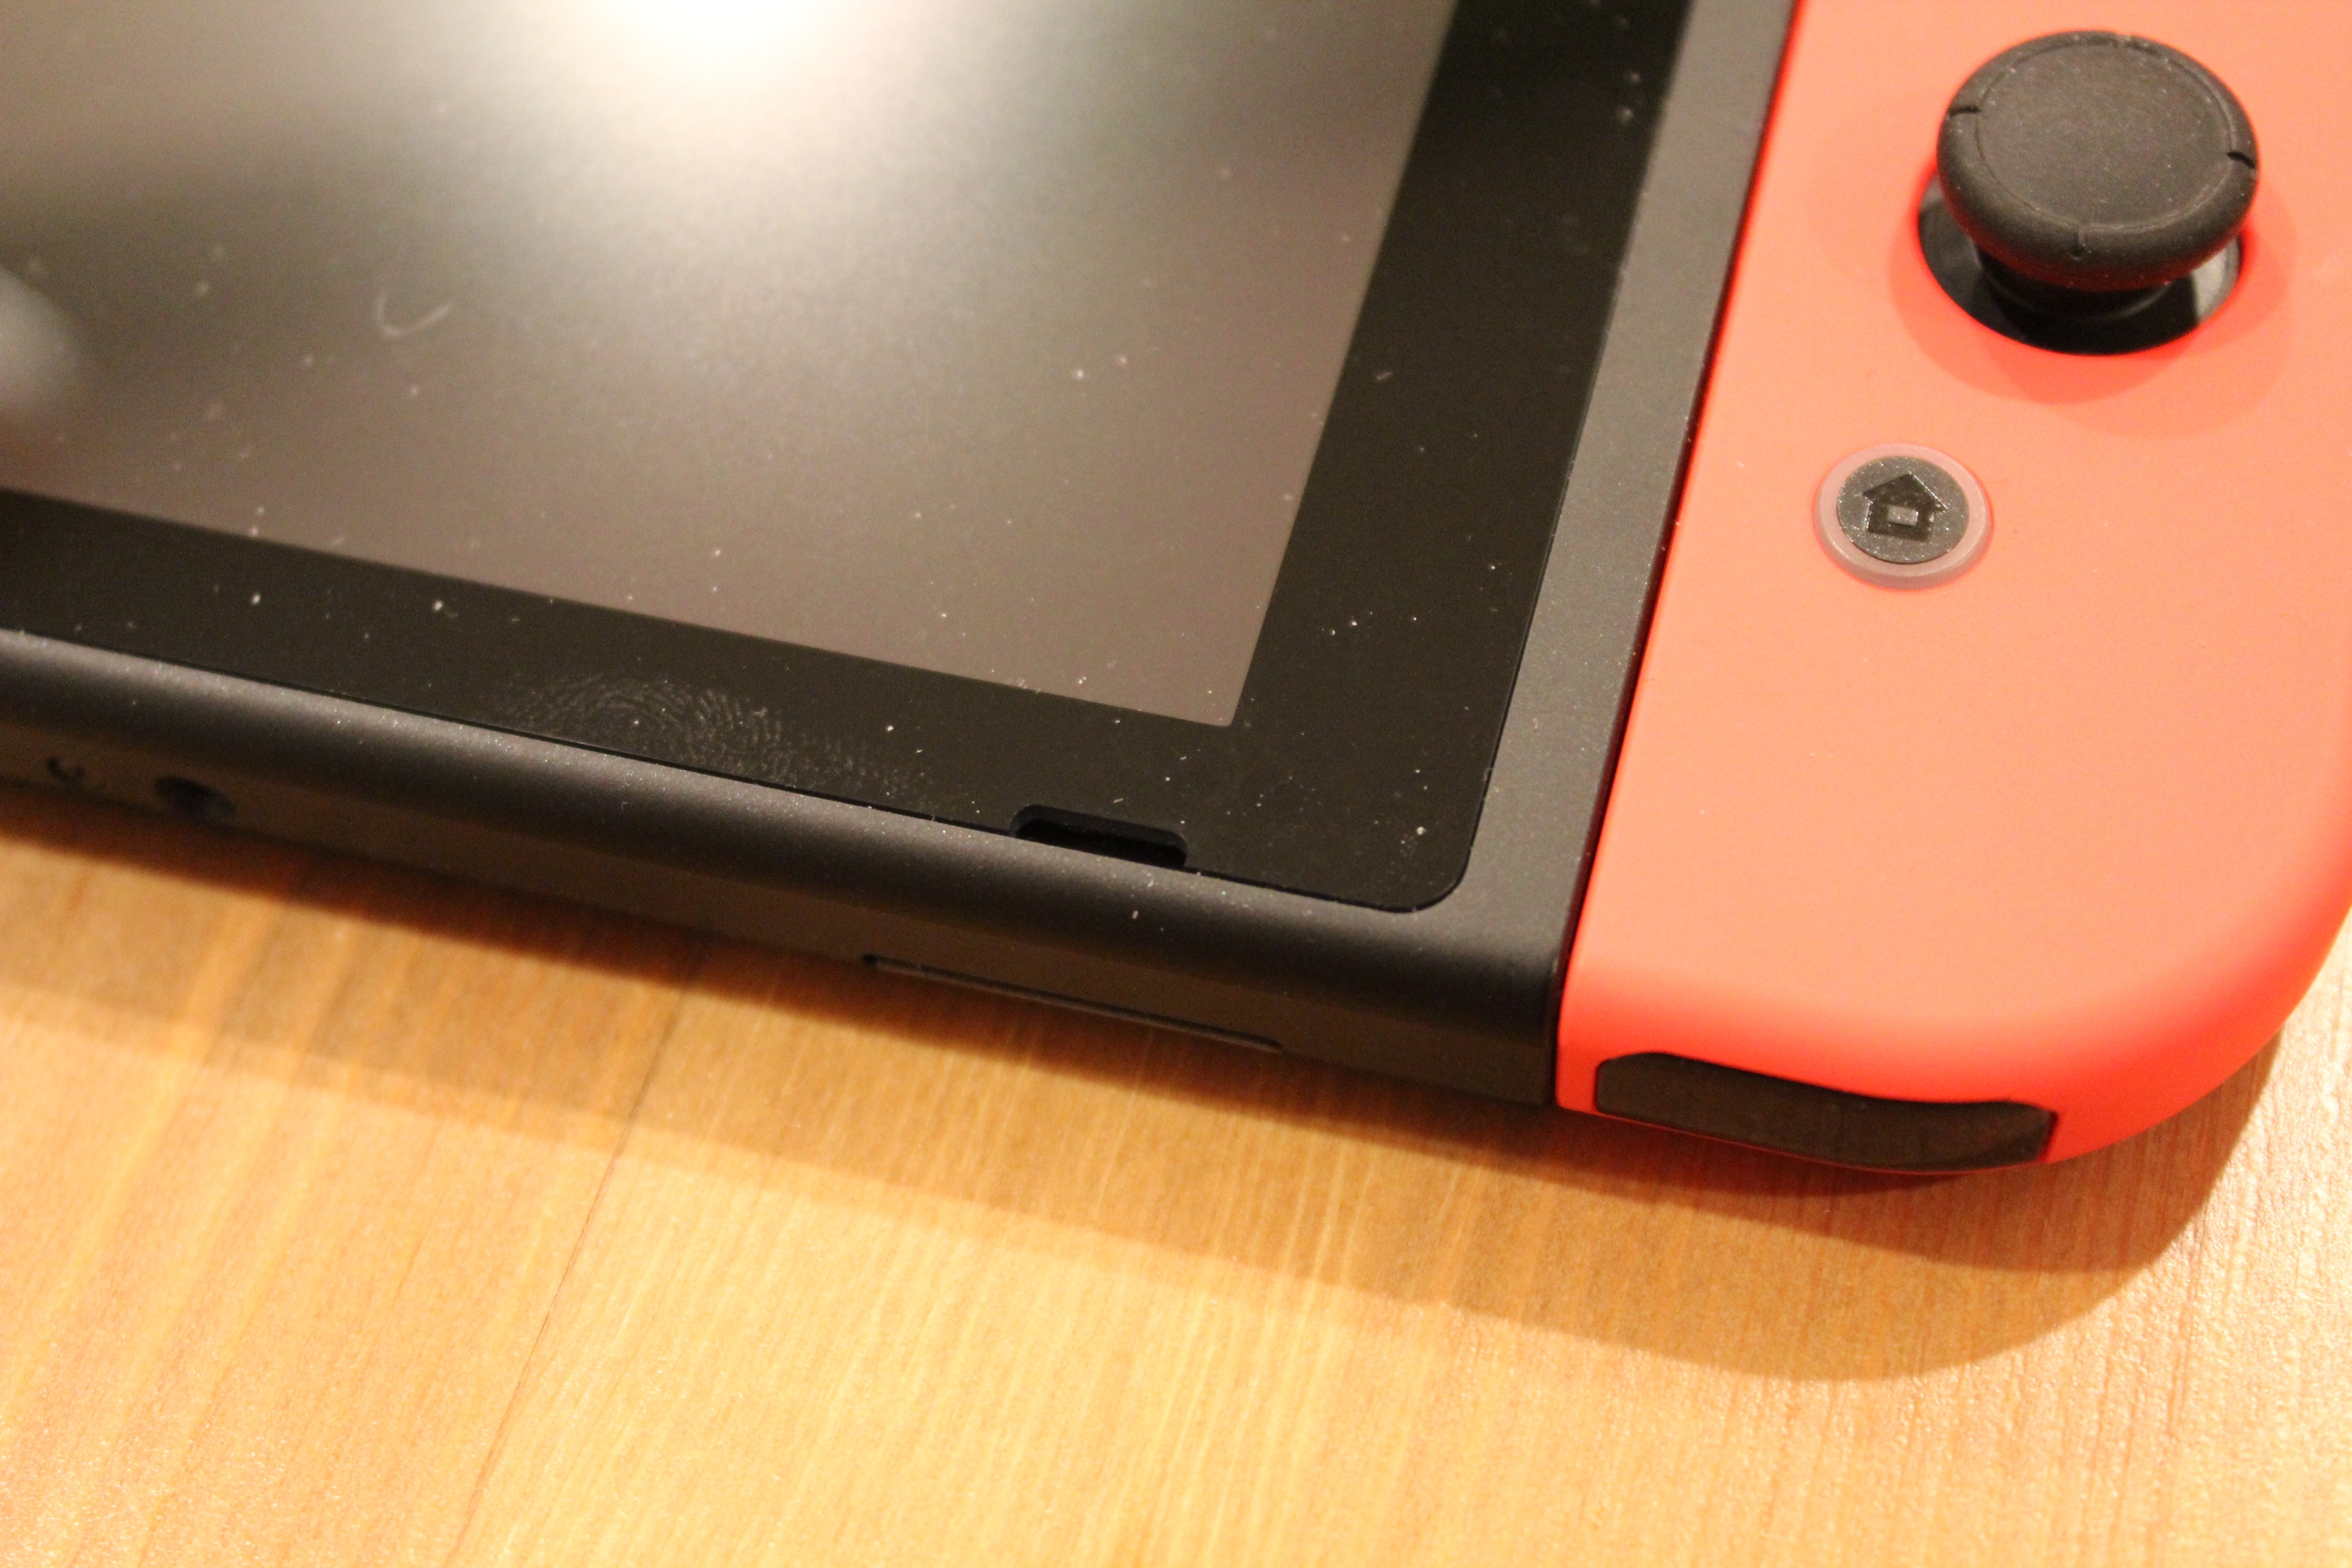 This black slit in the Switch hardware is one of its two speakers. It